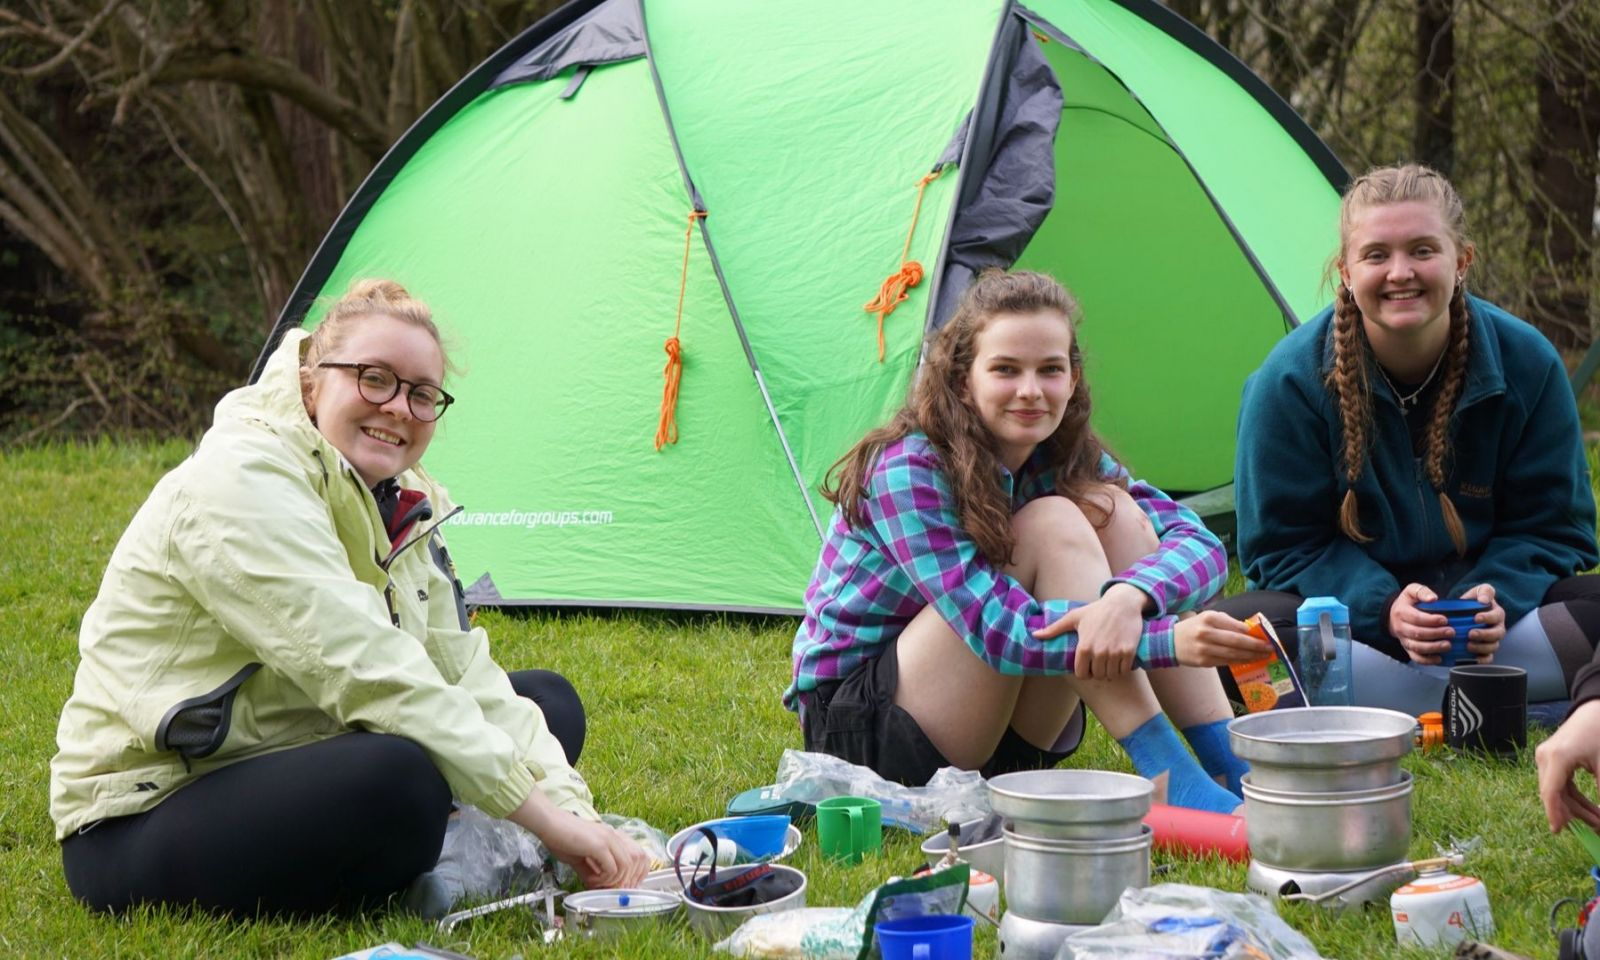 Group of girls smiling as they cook dinner on their stoves during a DofE expedition.